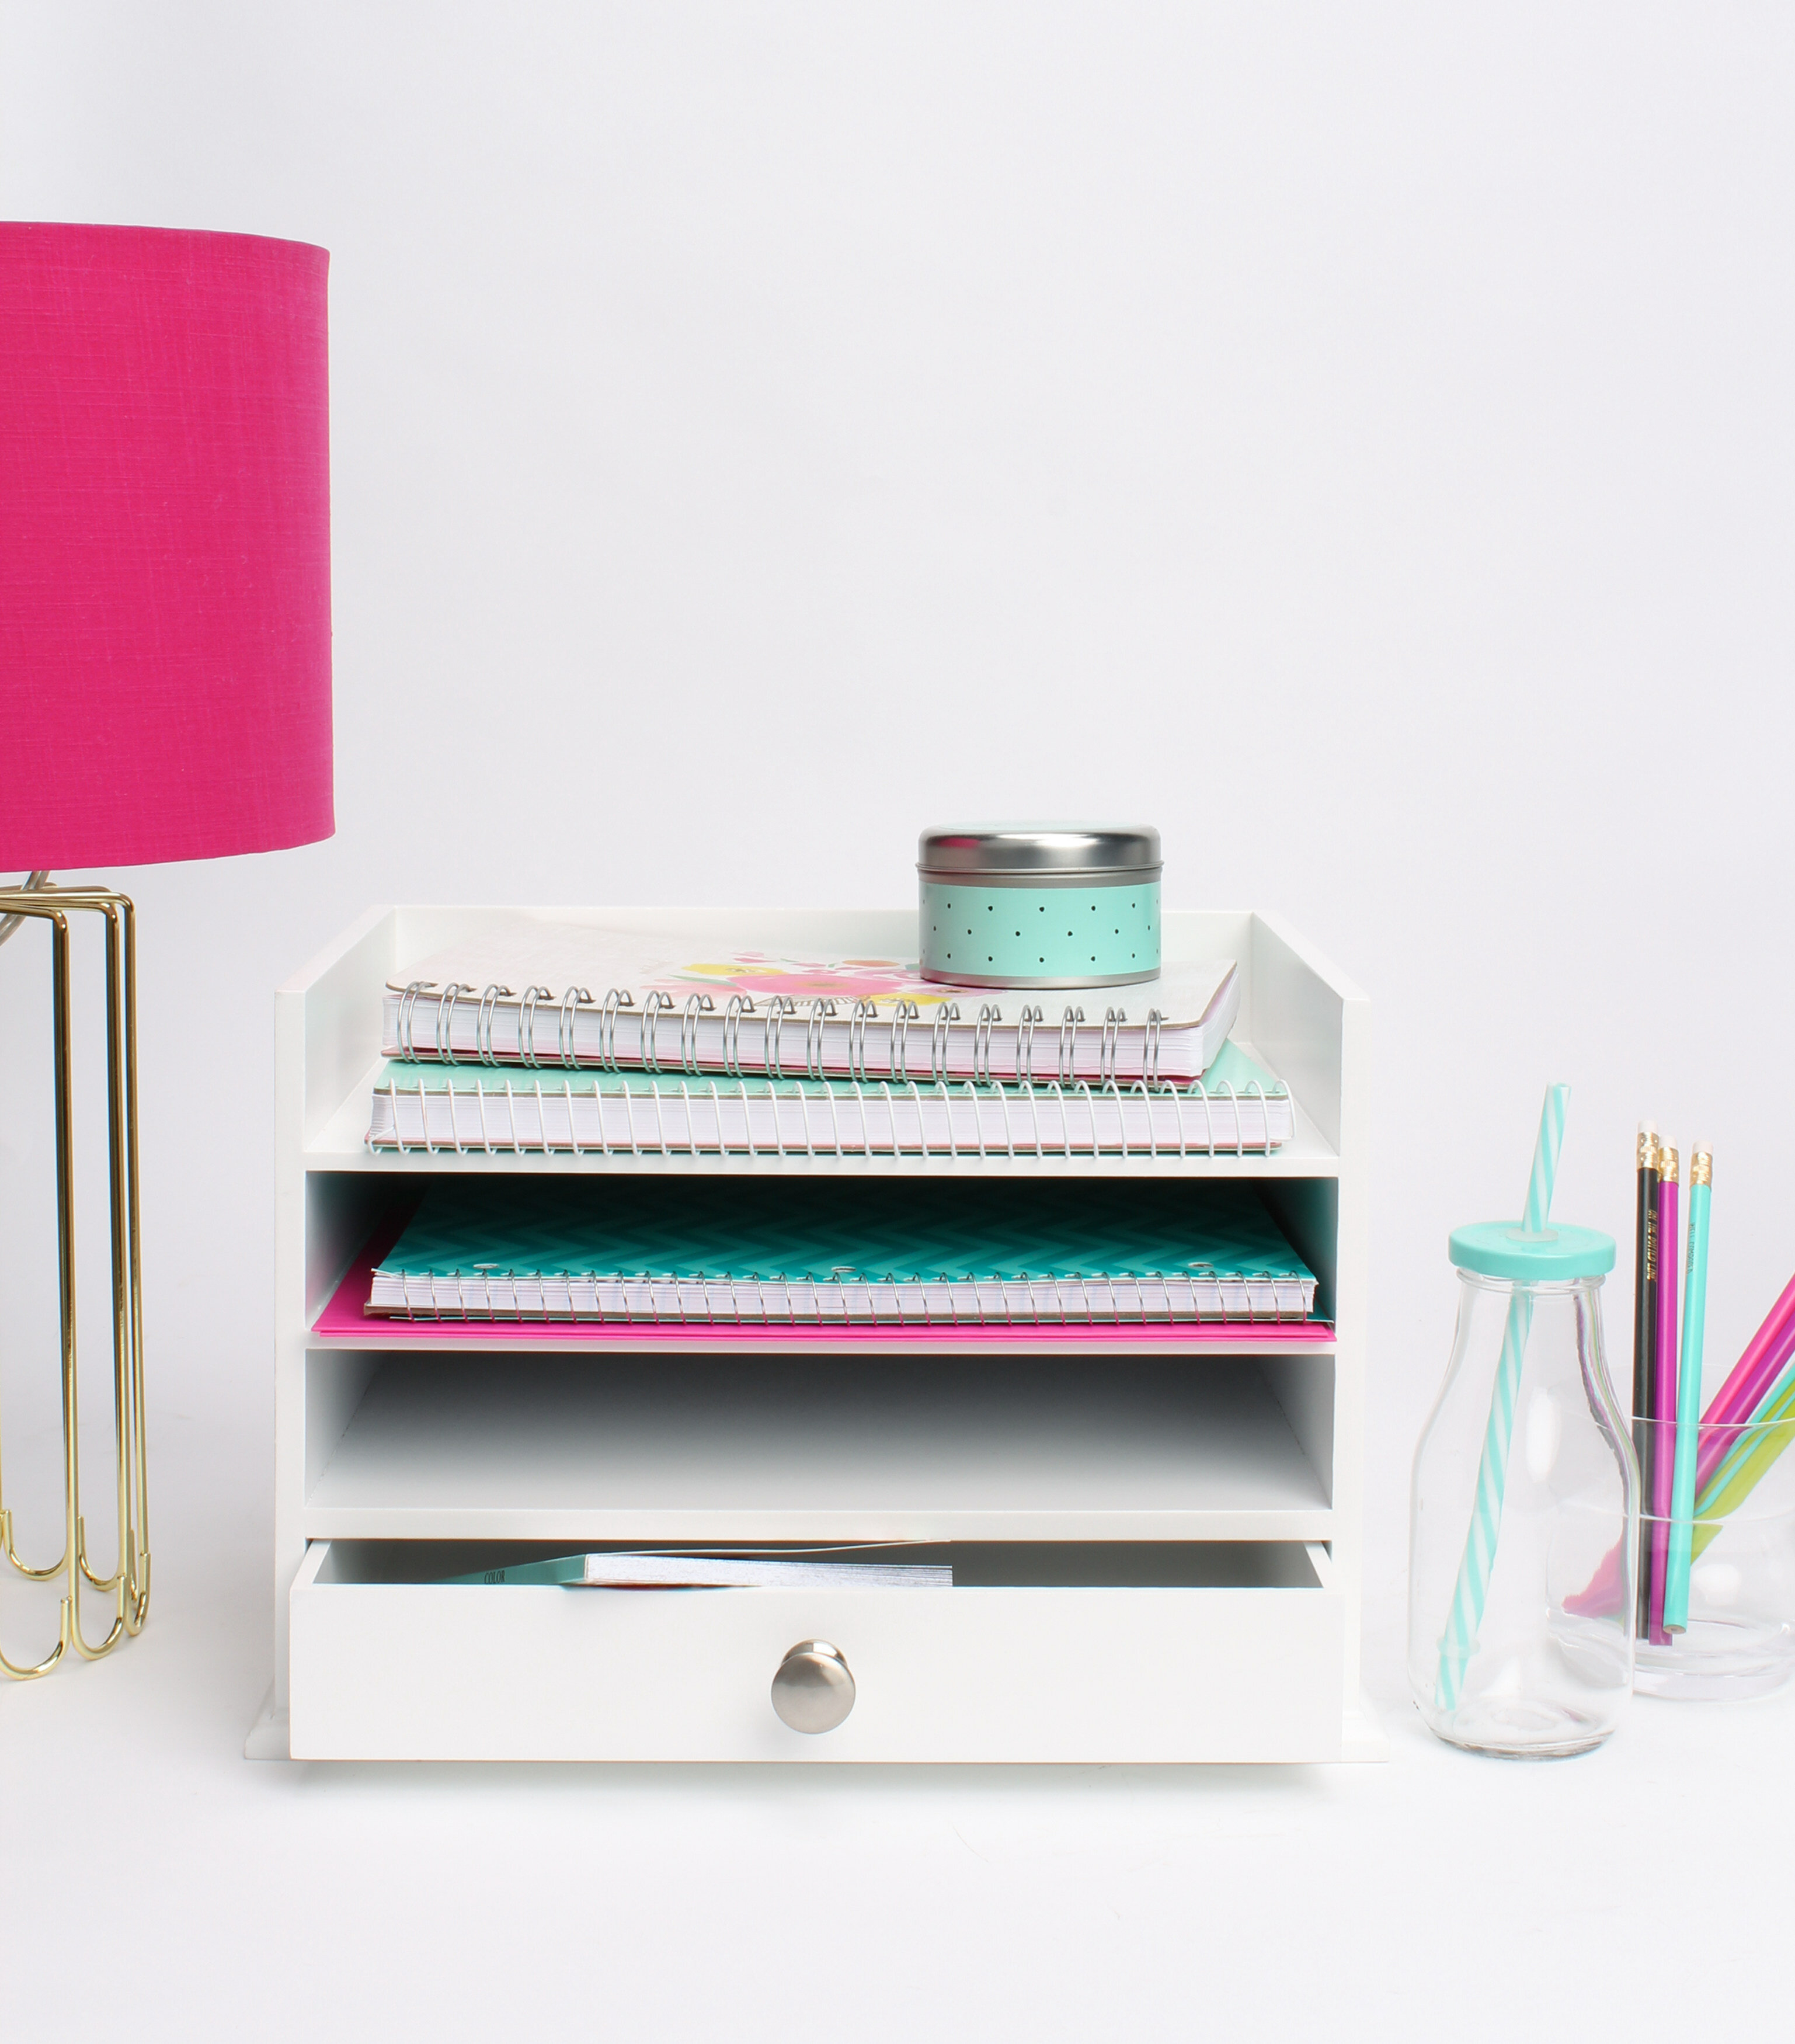 origami make to how rack everything desk a paper desktop tasty organizer